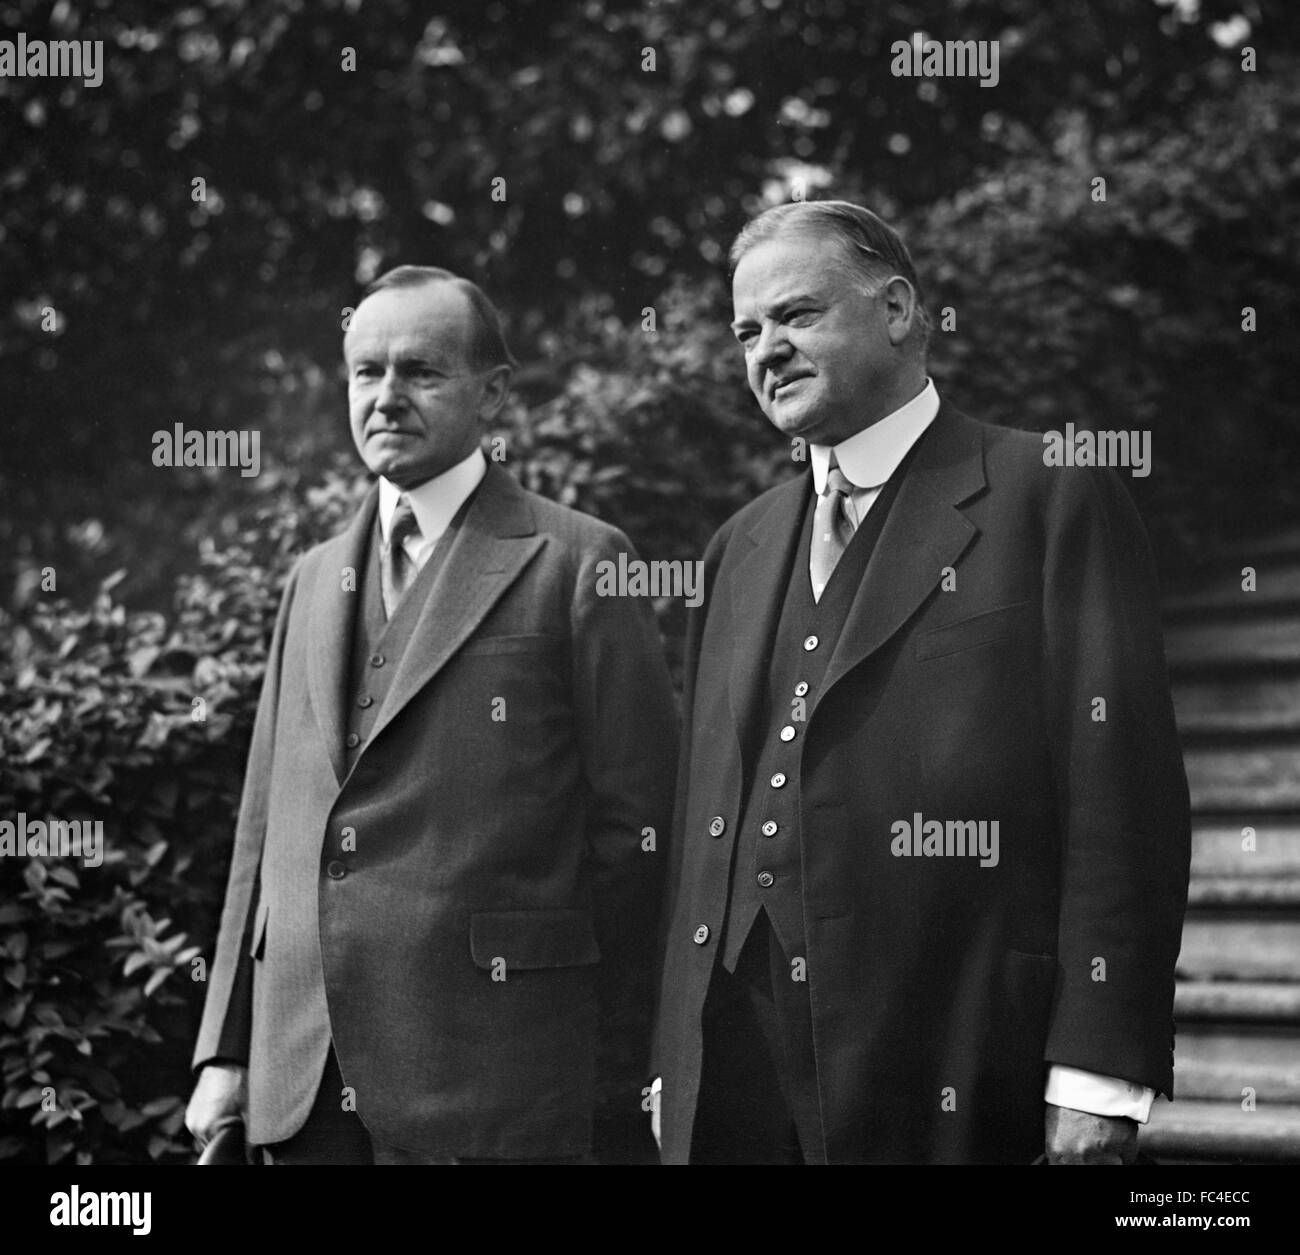 Calvin Coolidge, the 30th President of the United States, and Herbert Hoover, the 31st President (US Secretary of Stock Photo